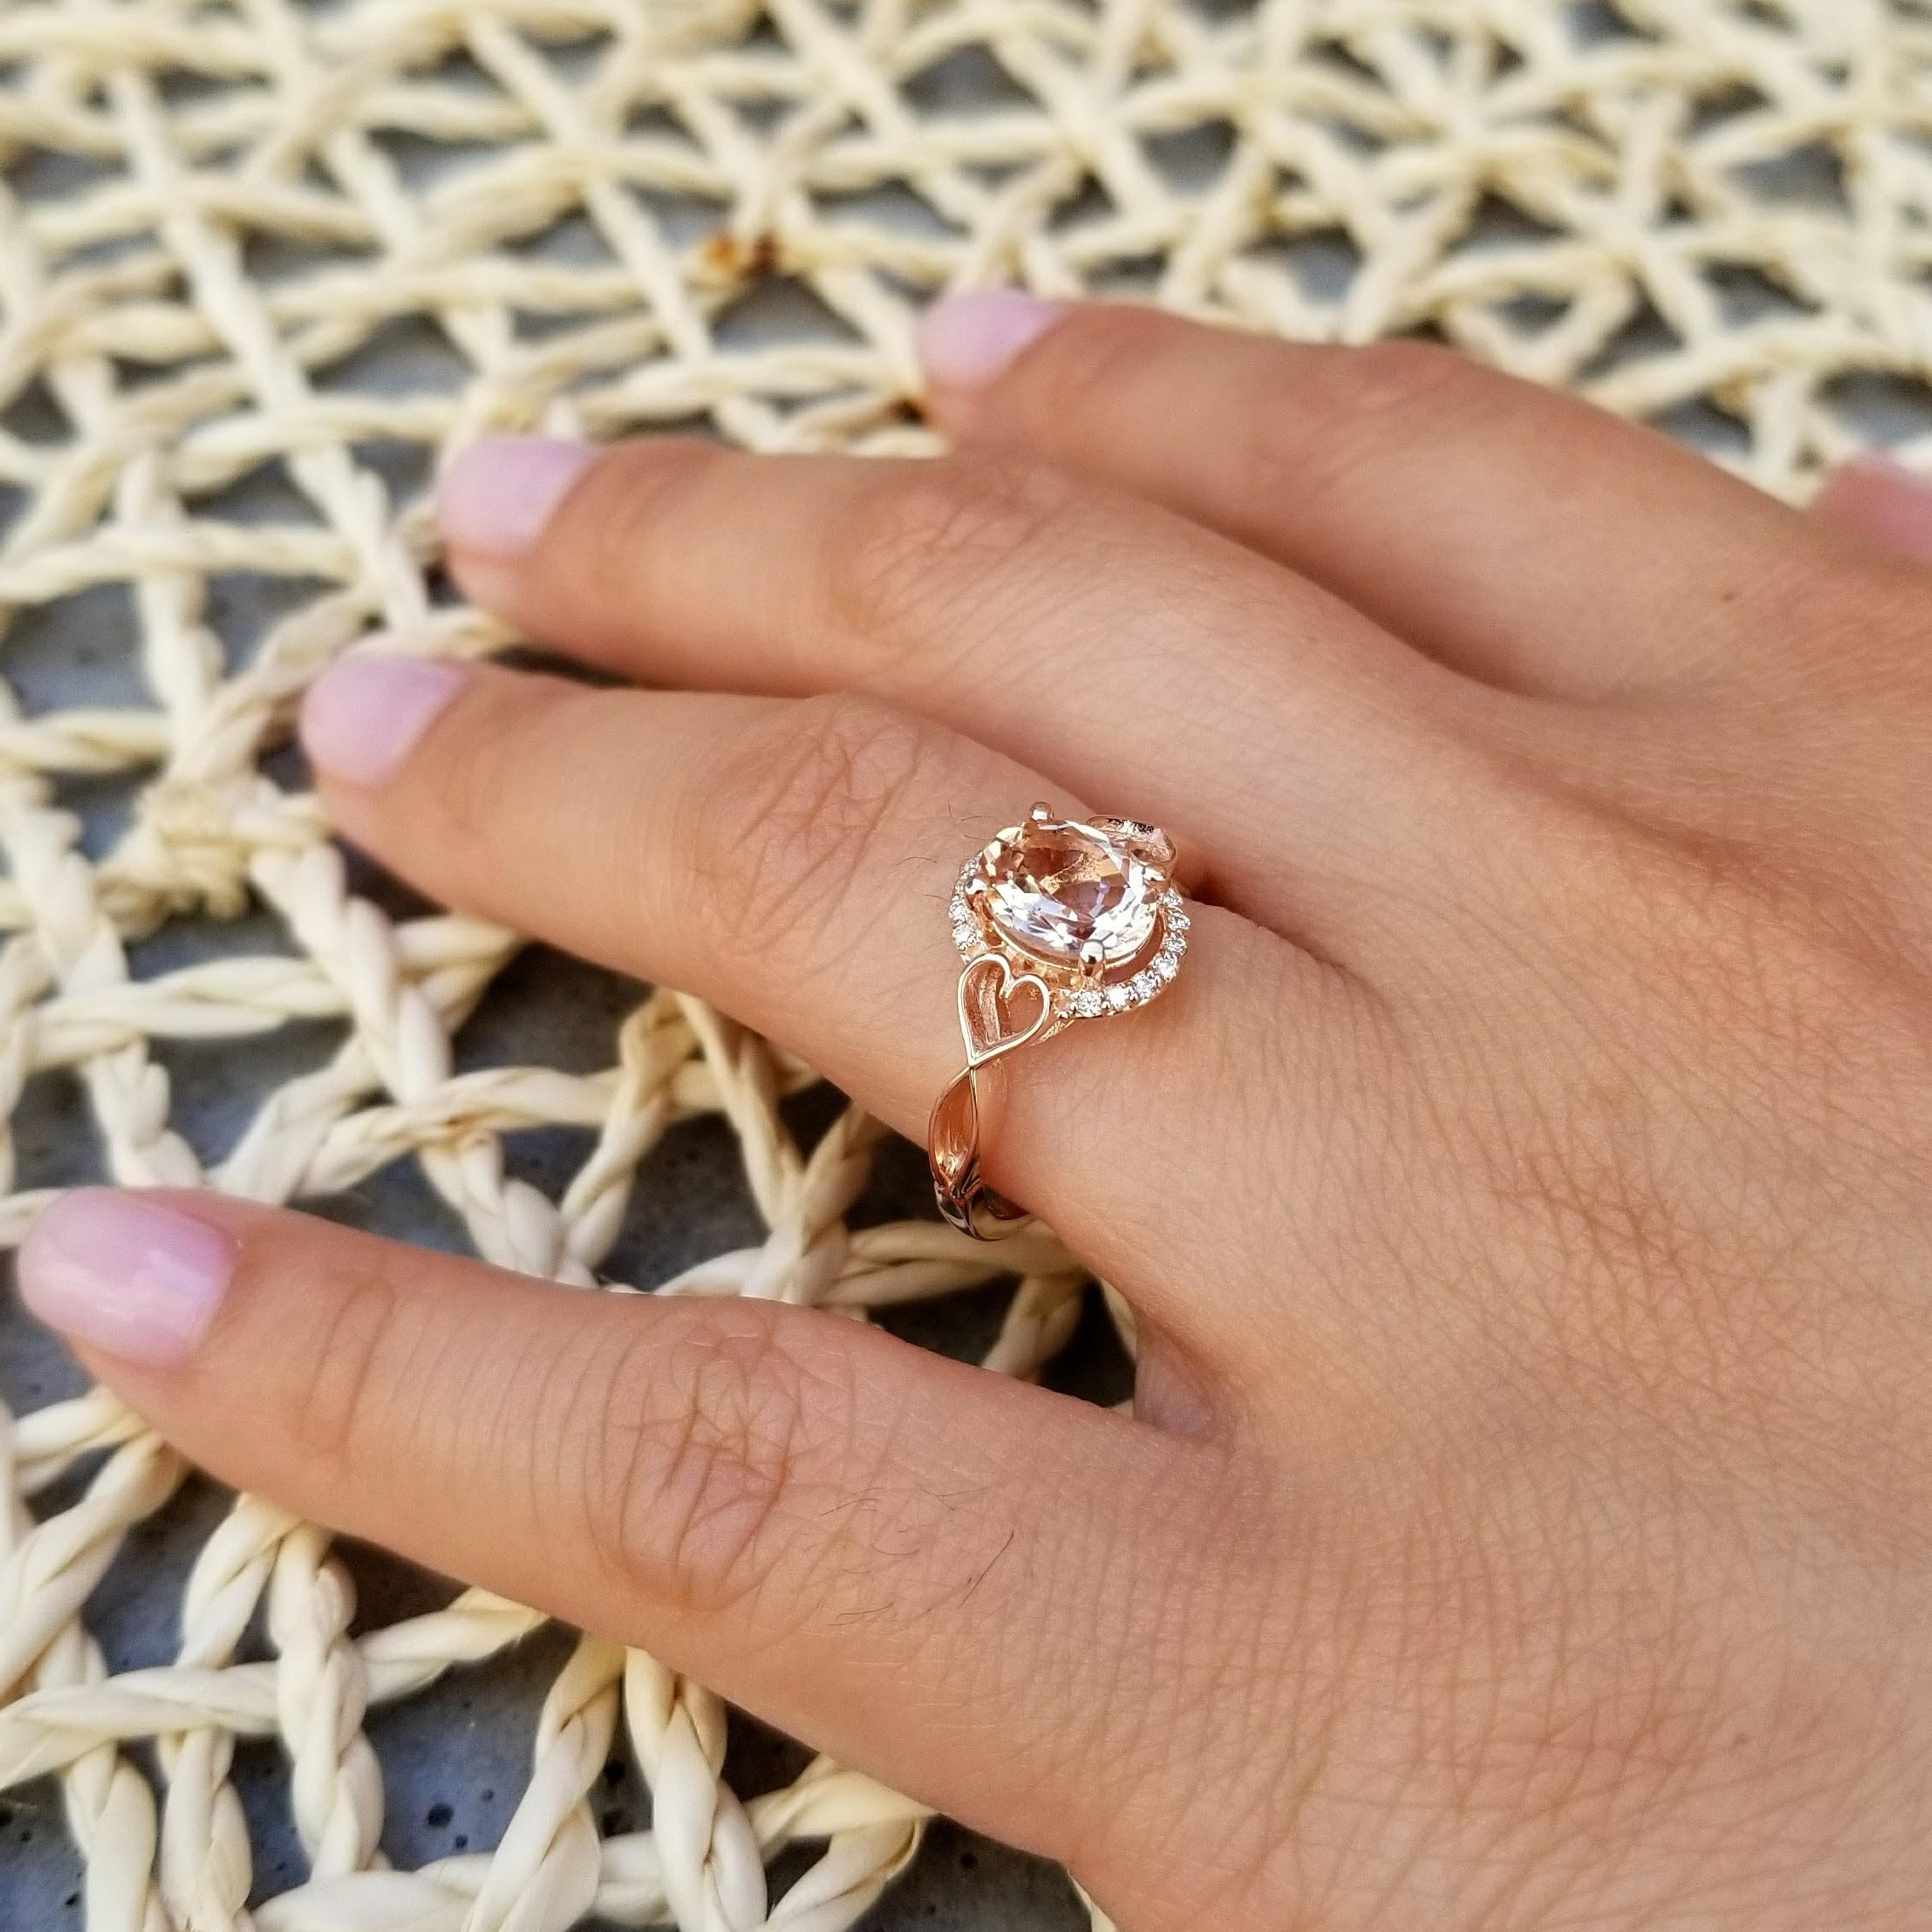 667c1c7136ca1 Morganite Engagement Ring Diamond Halo Ring In 14k White / Rose ...